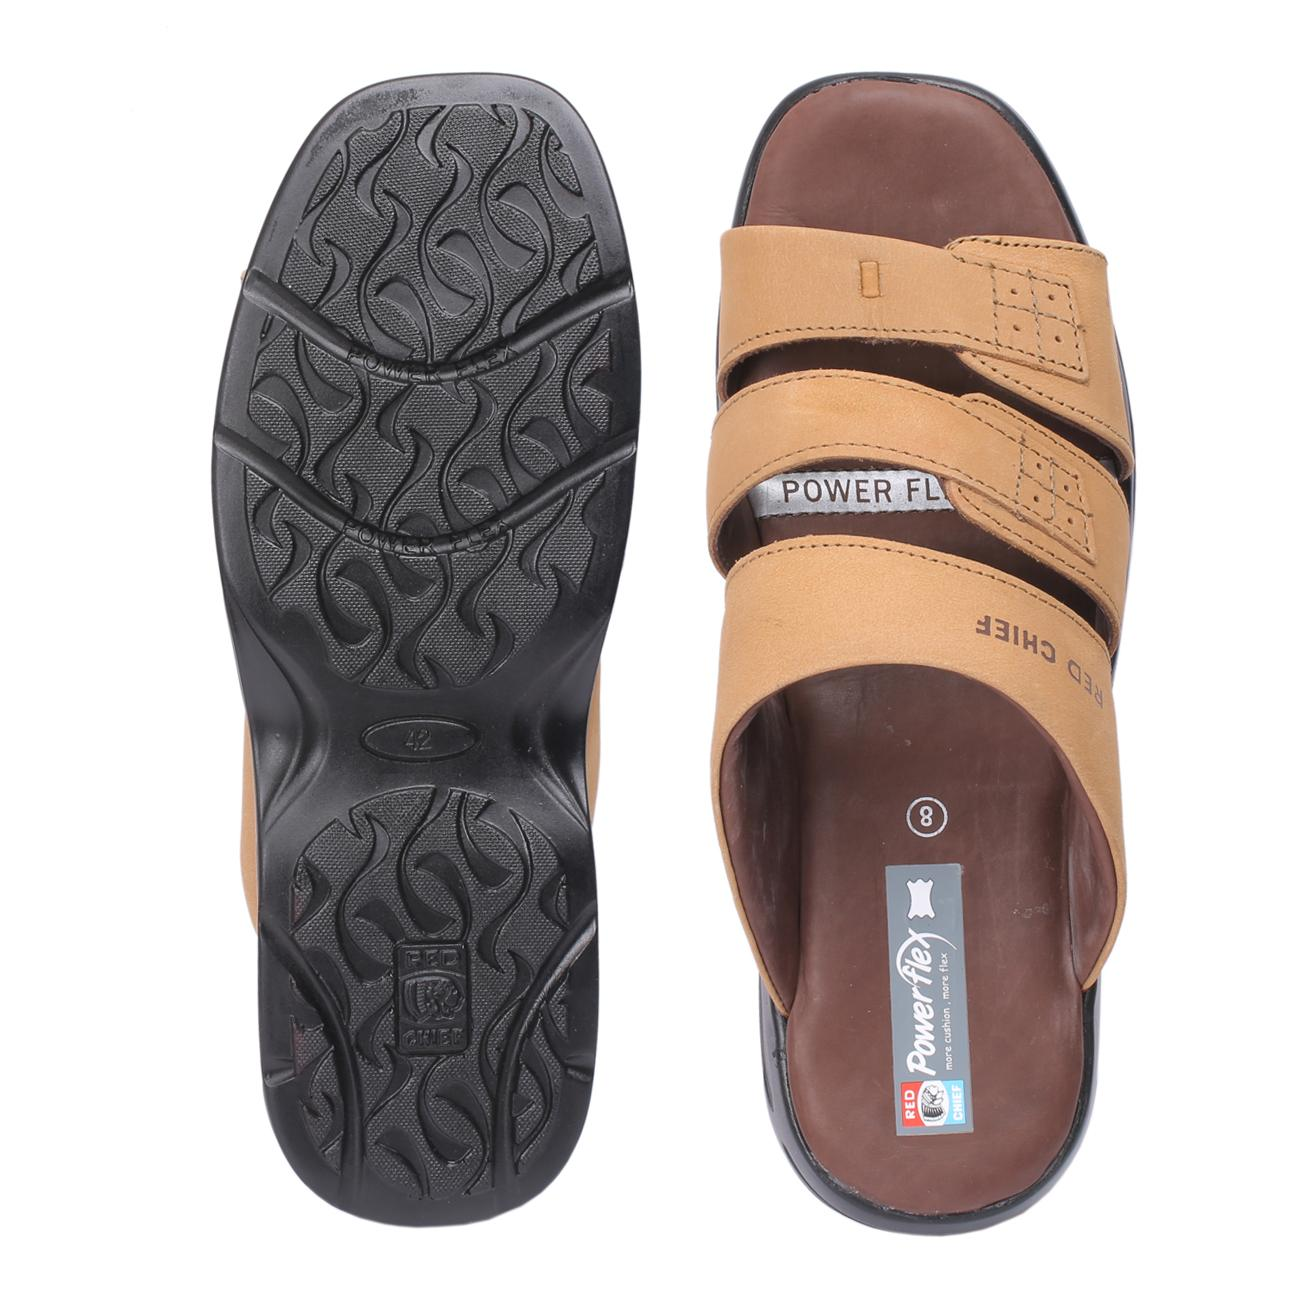 rust slip-on slippers from behind